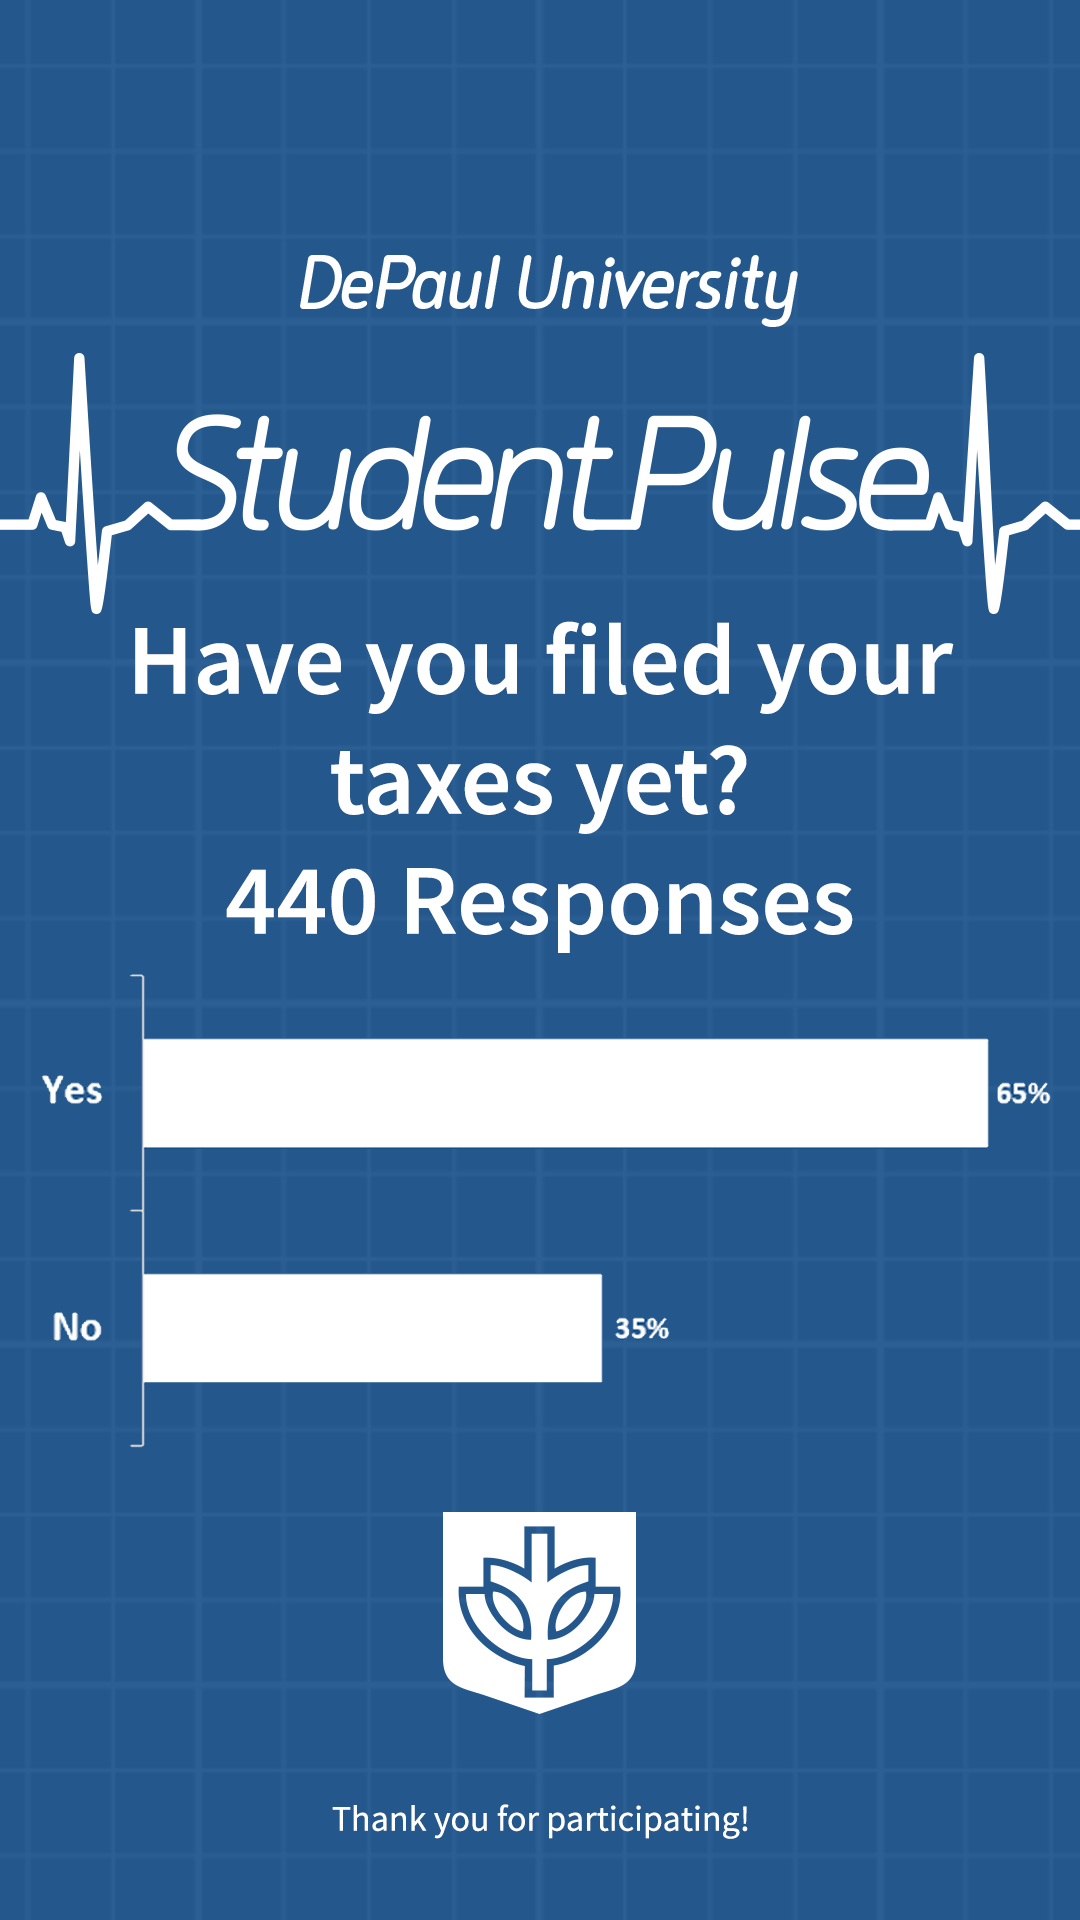 Have you filed your taxes yet?